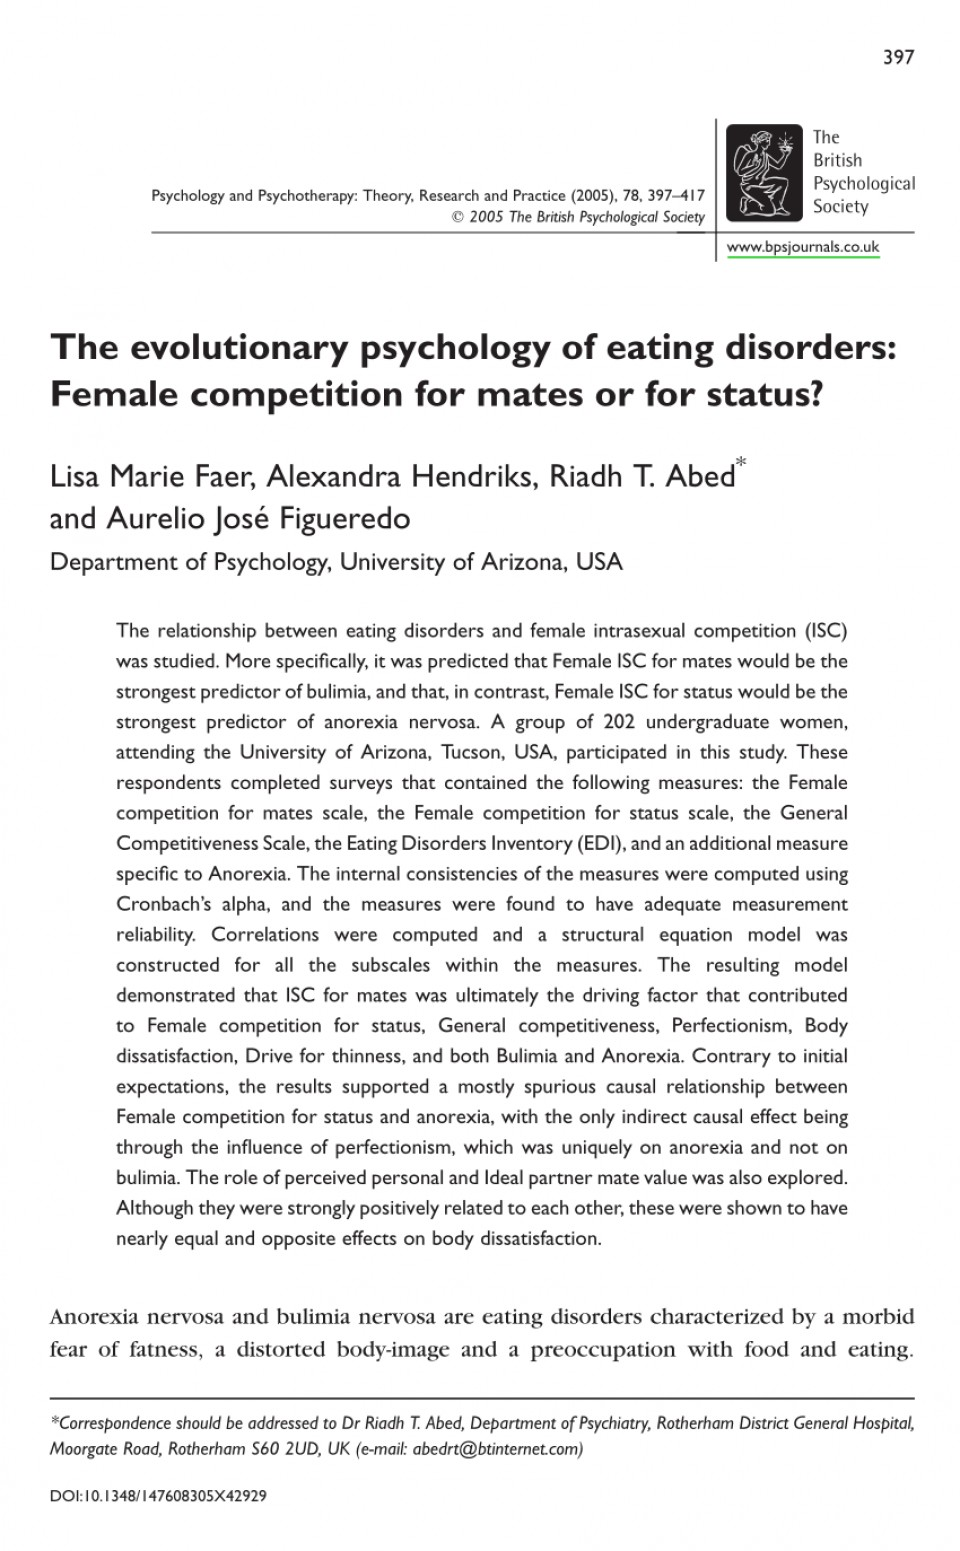 006 Psychology Research Paper On Eating Disorders Top Study Psychological Into Topics 960